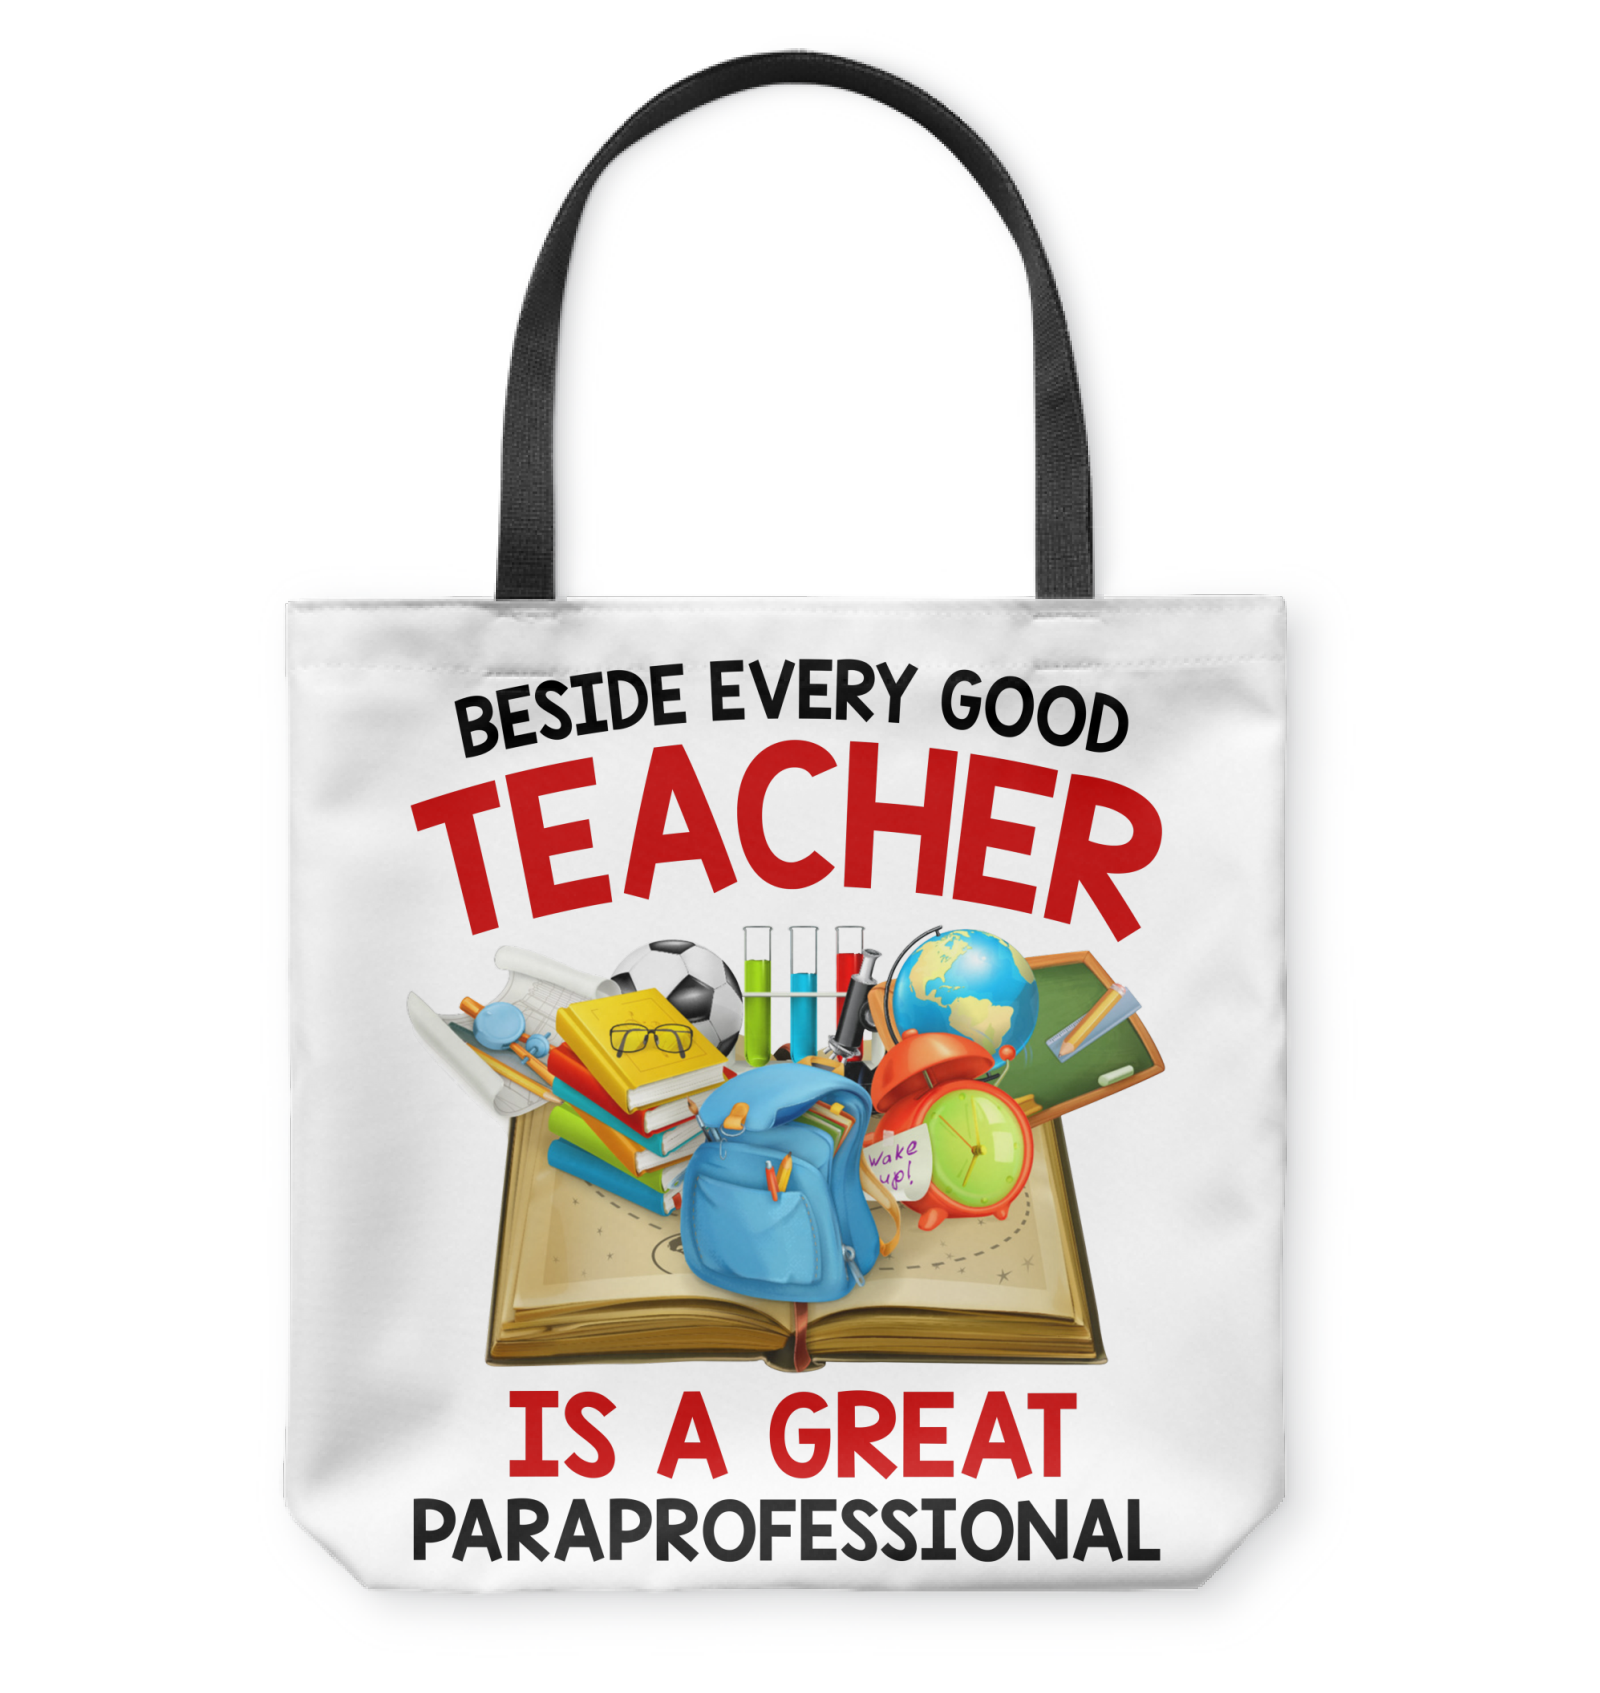 VIRA tote bag for awesome teachers & paraprofessionals